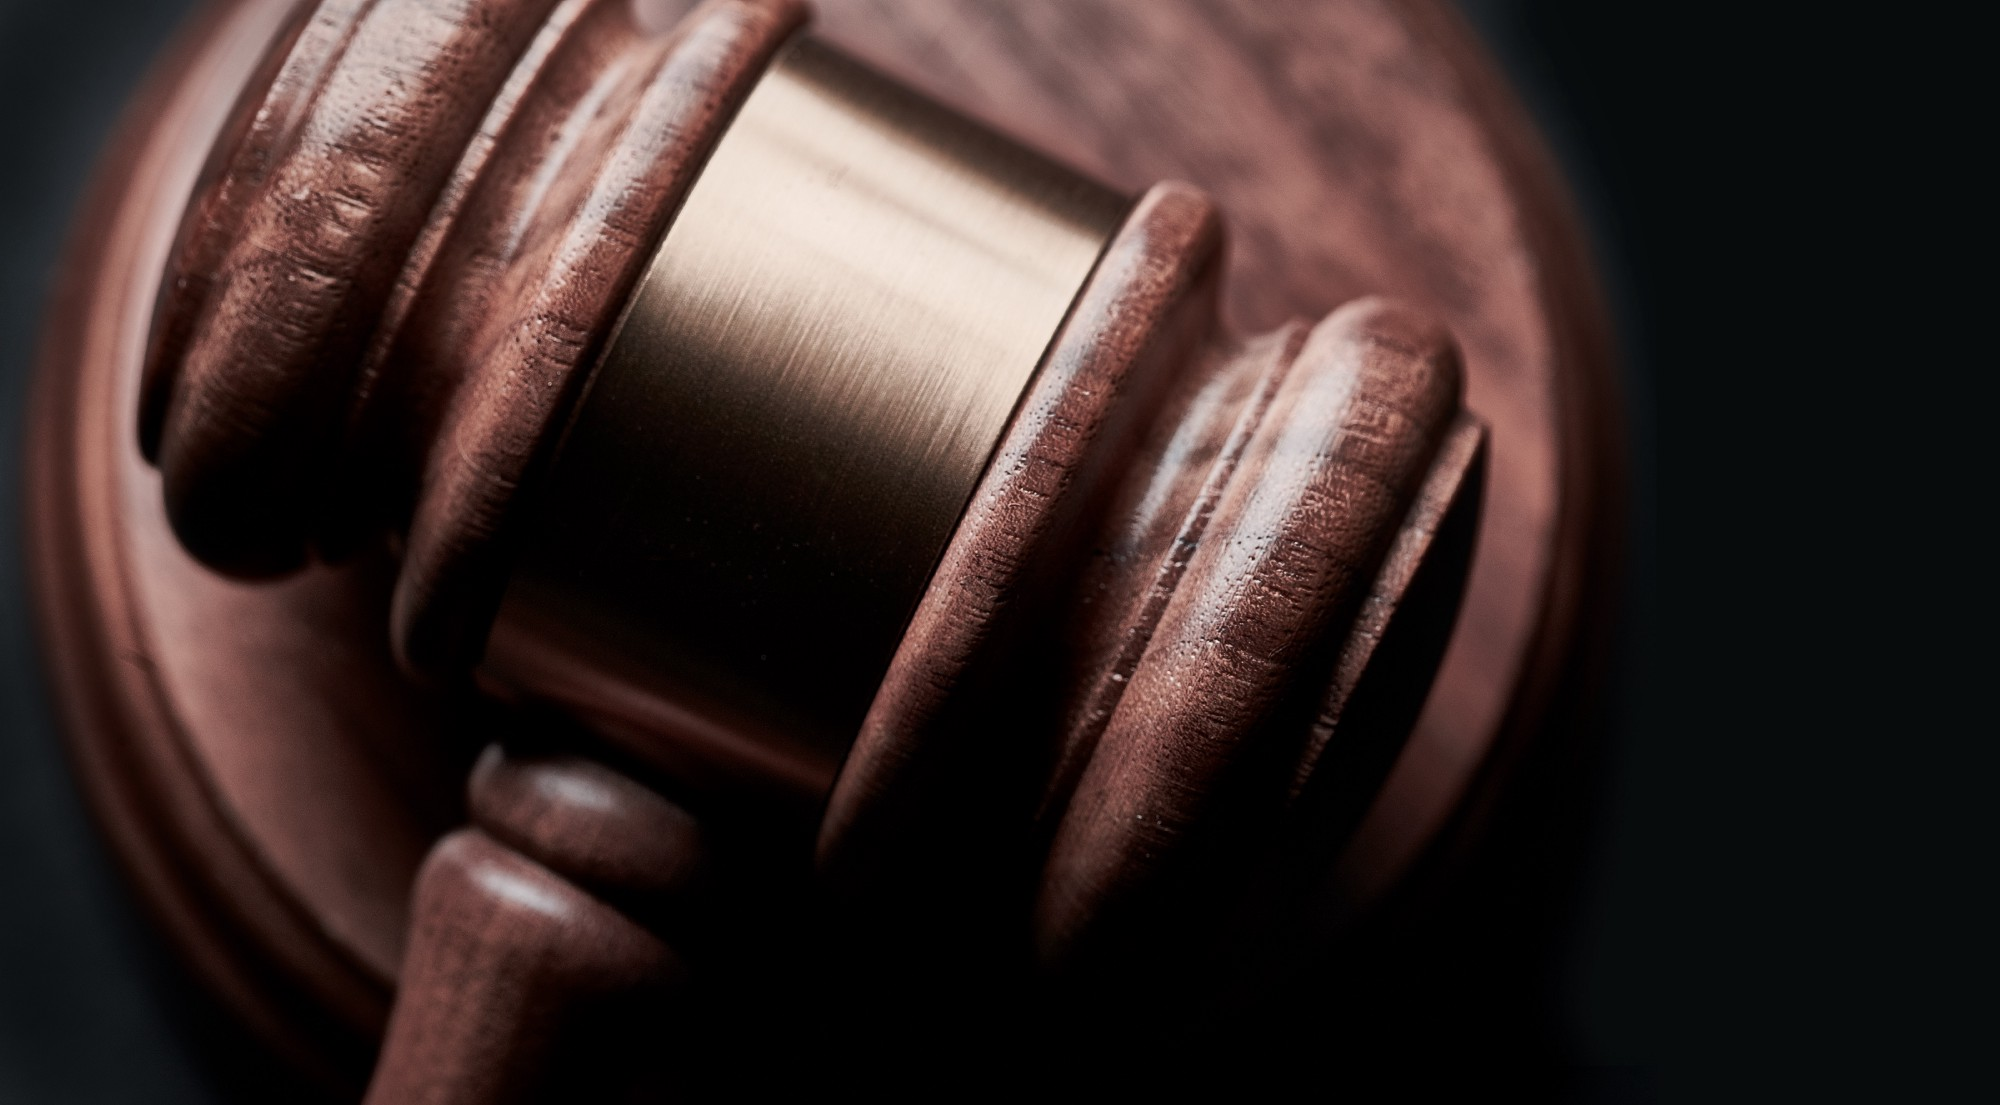 A picture of a gavel